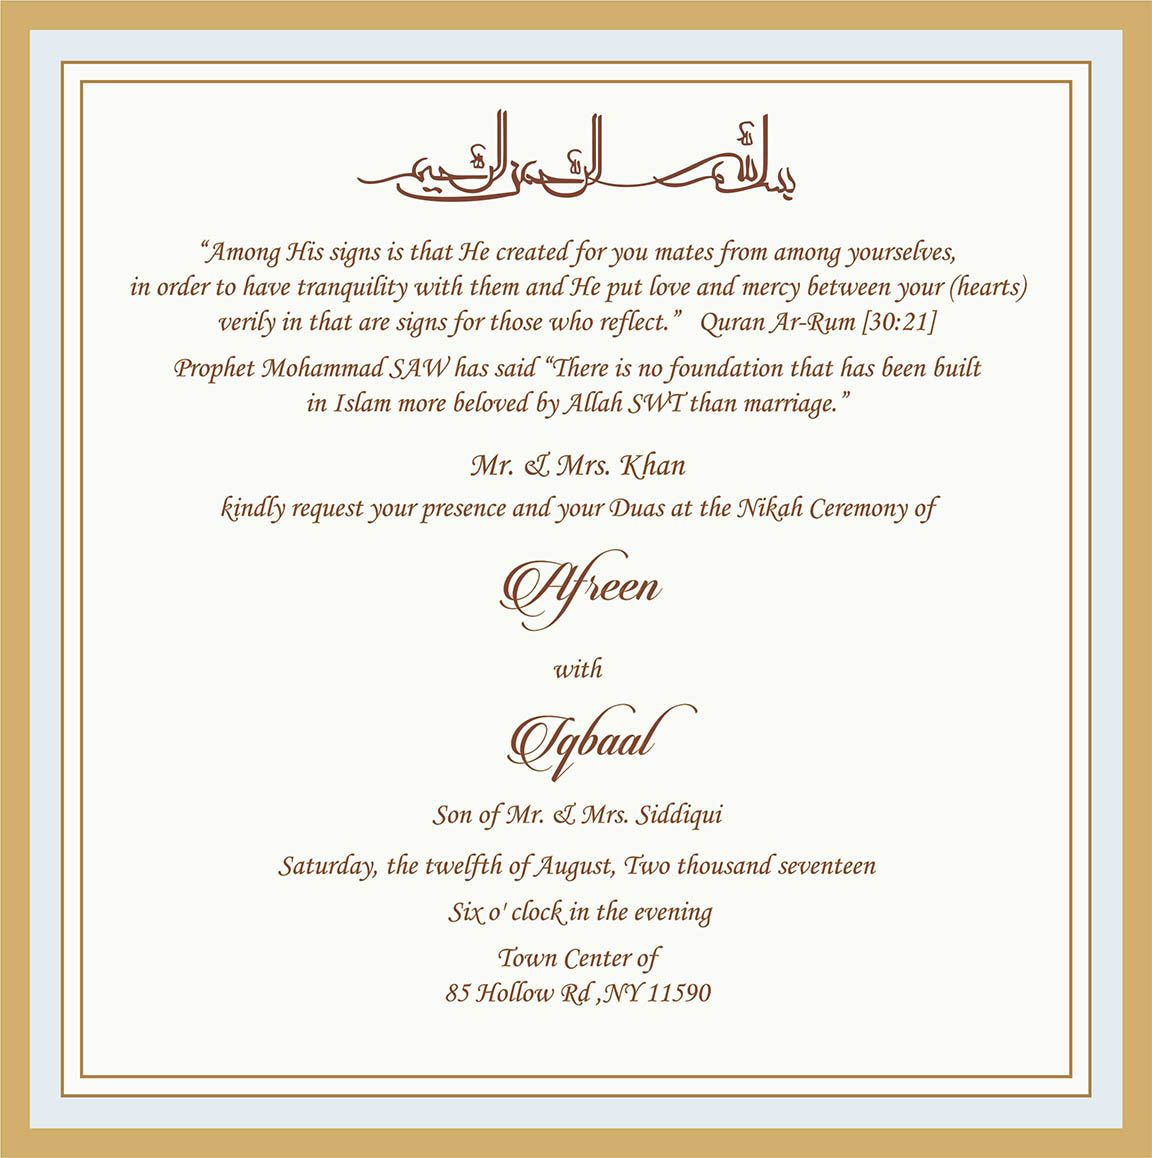 Wedding invitation wording for muslim wedding ceremony muslim wedding invitation wording for muslim wedding ceremony filmwisefo